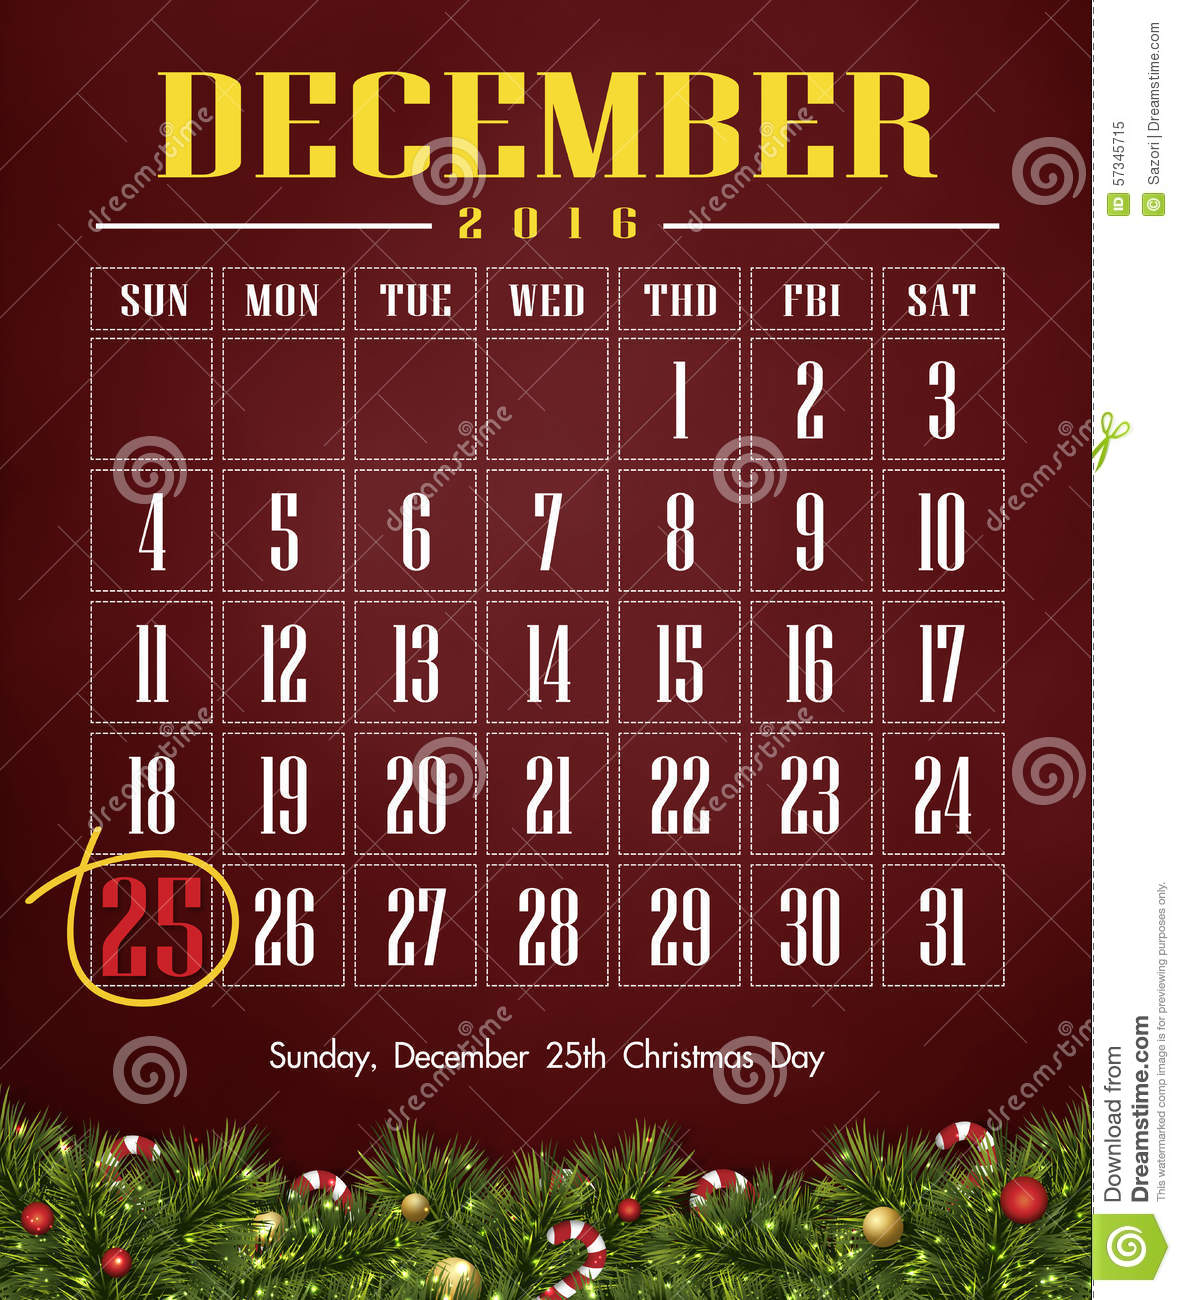 Calendar 2016 With Christmas Day Stock Illustration - Image: 57345715